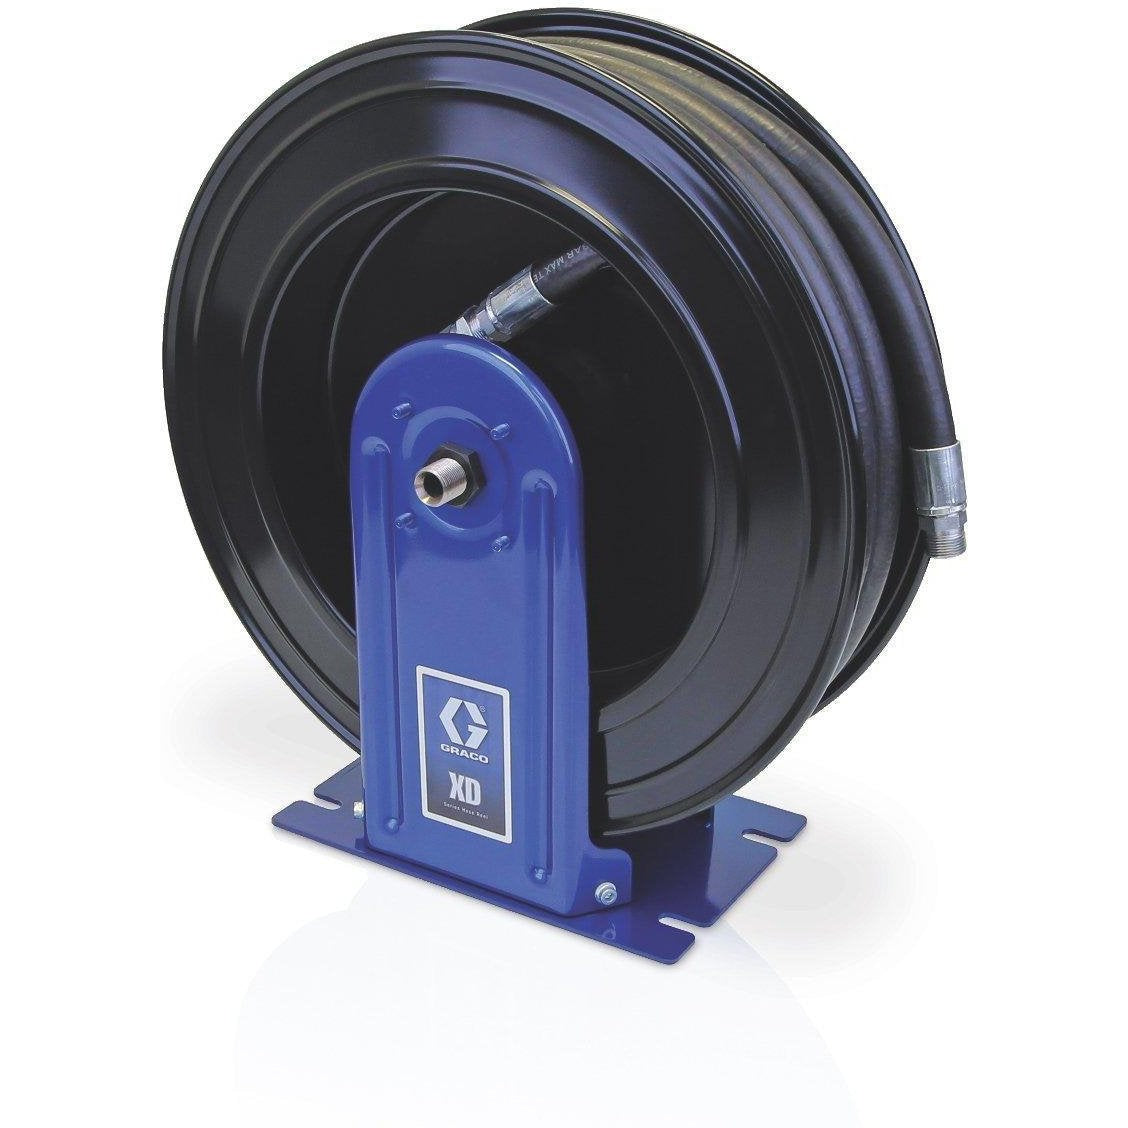 Graco Hose Reel Builder